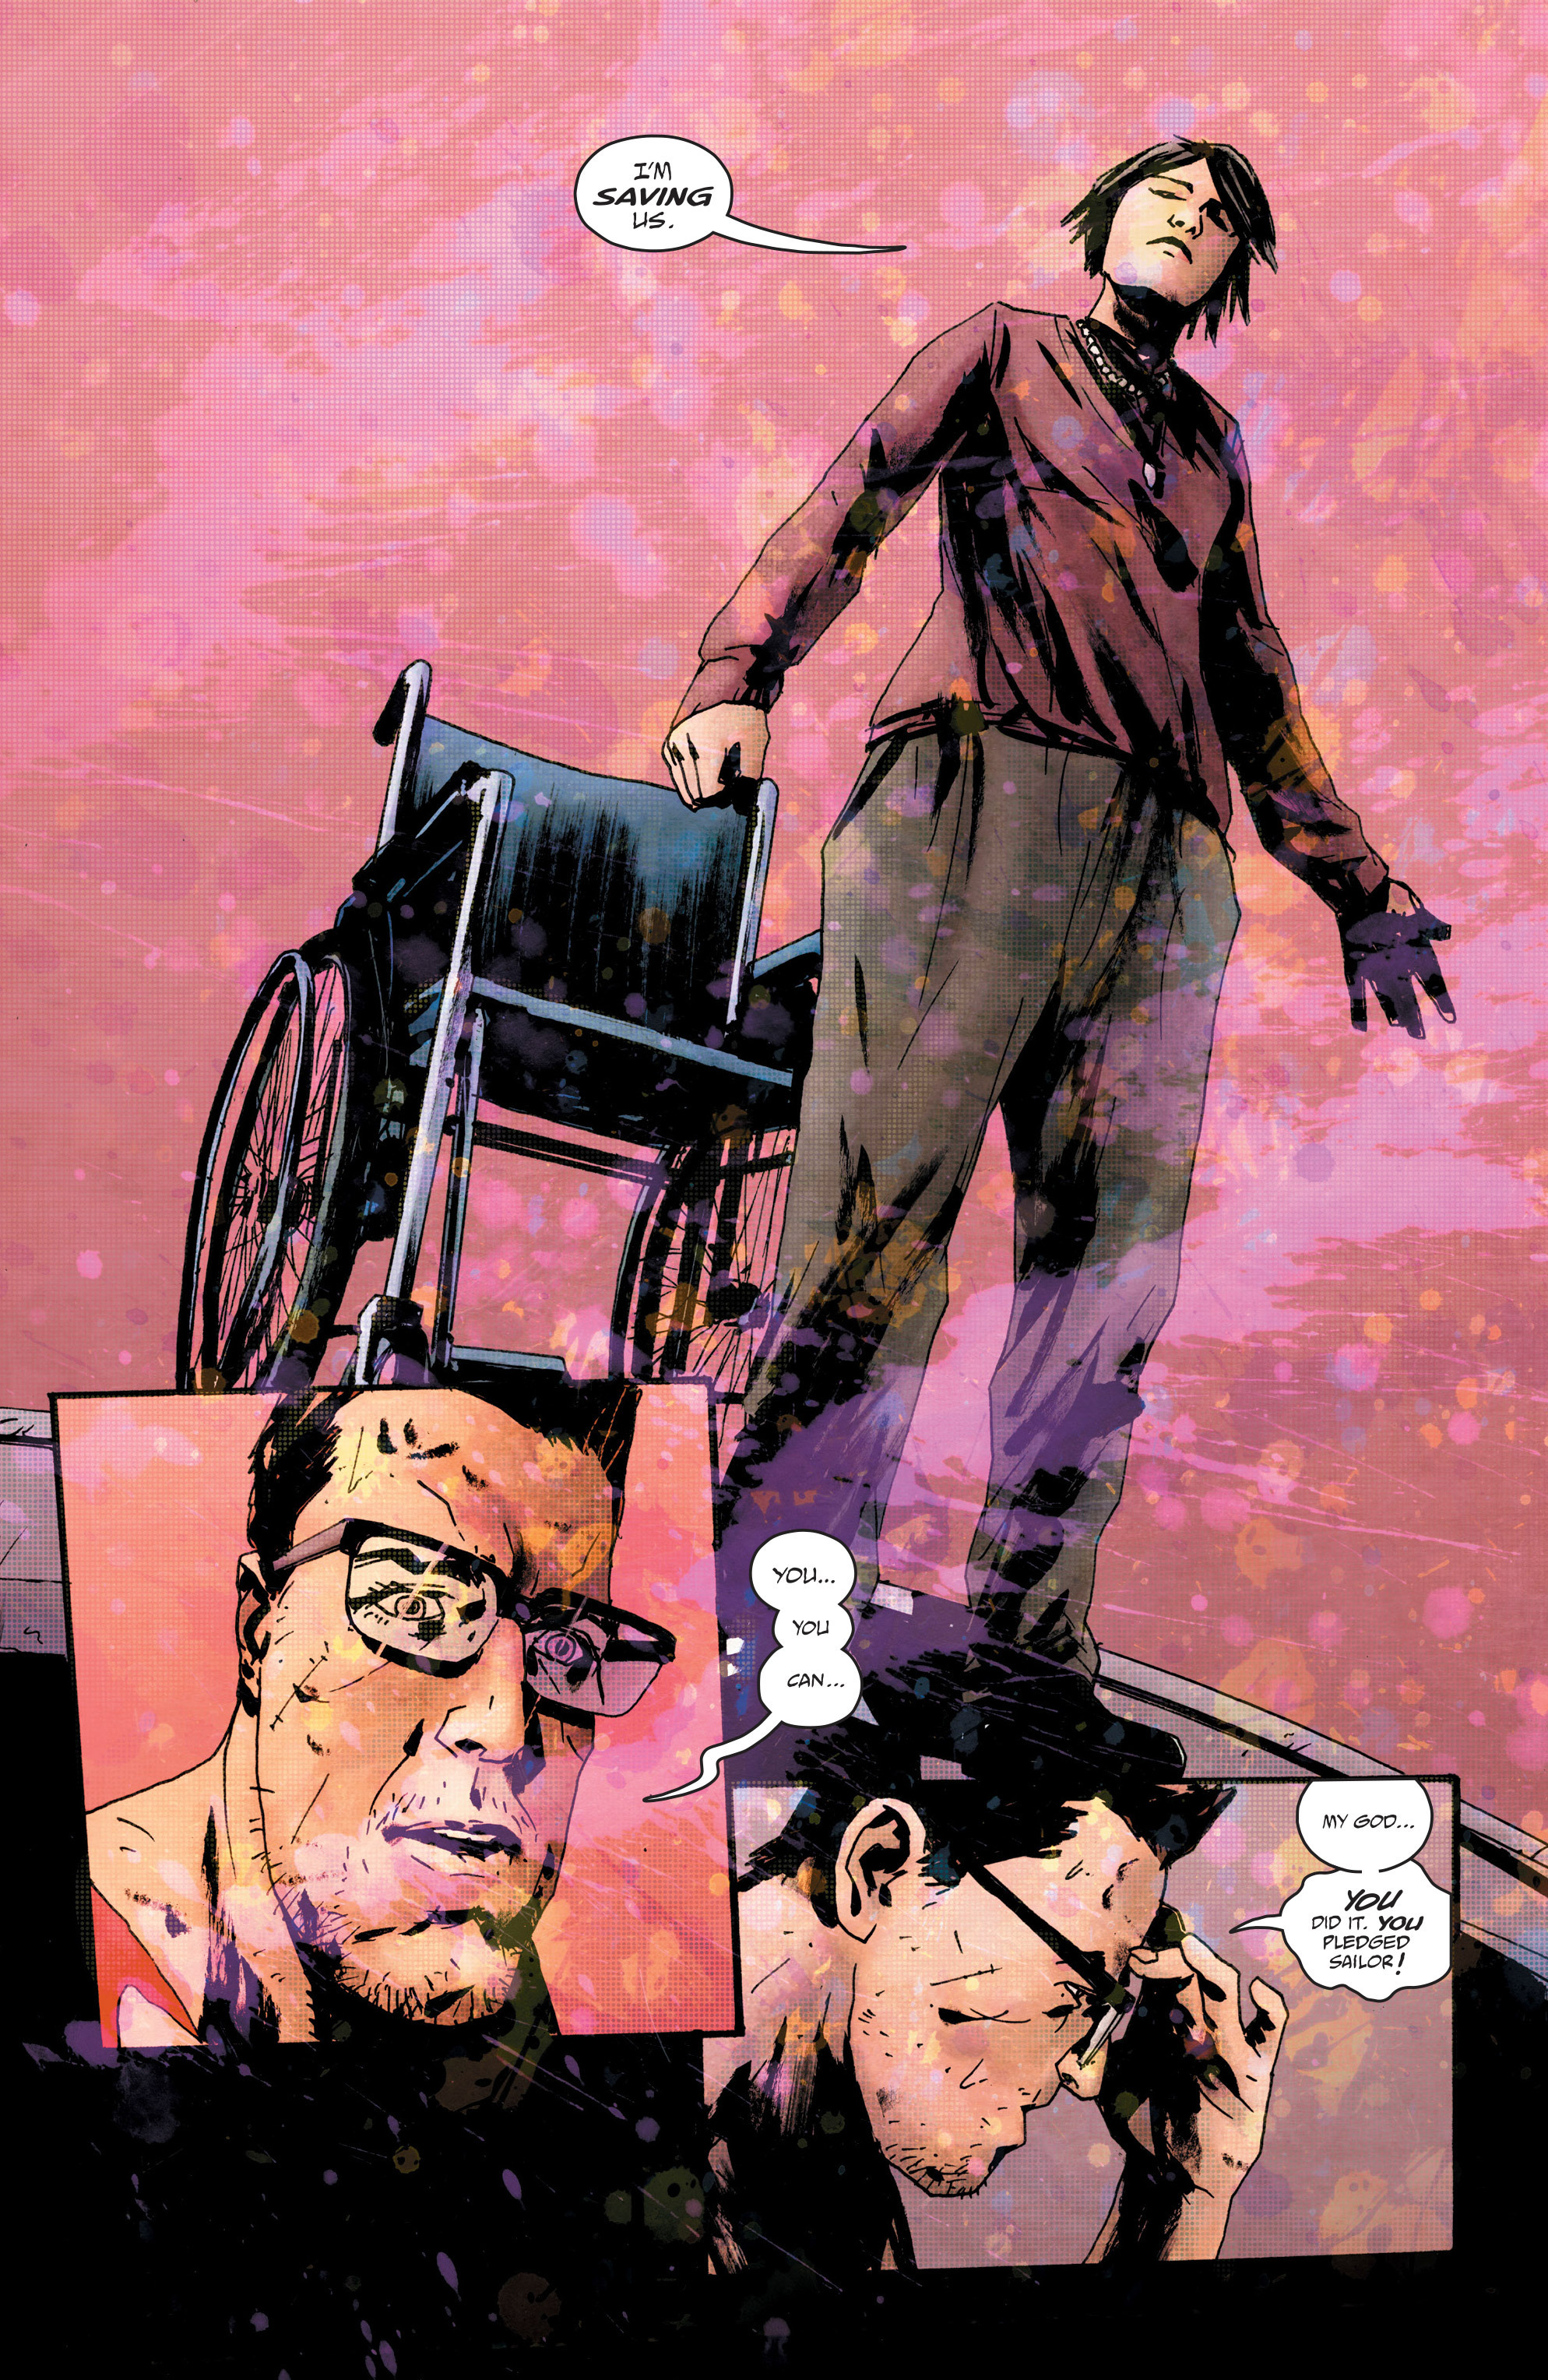 Read online Wytches comic -  Issue #6 - 18